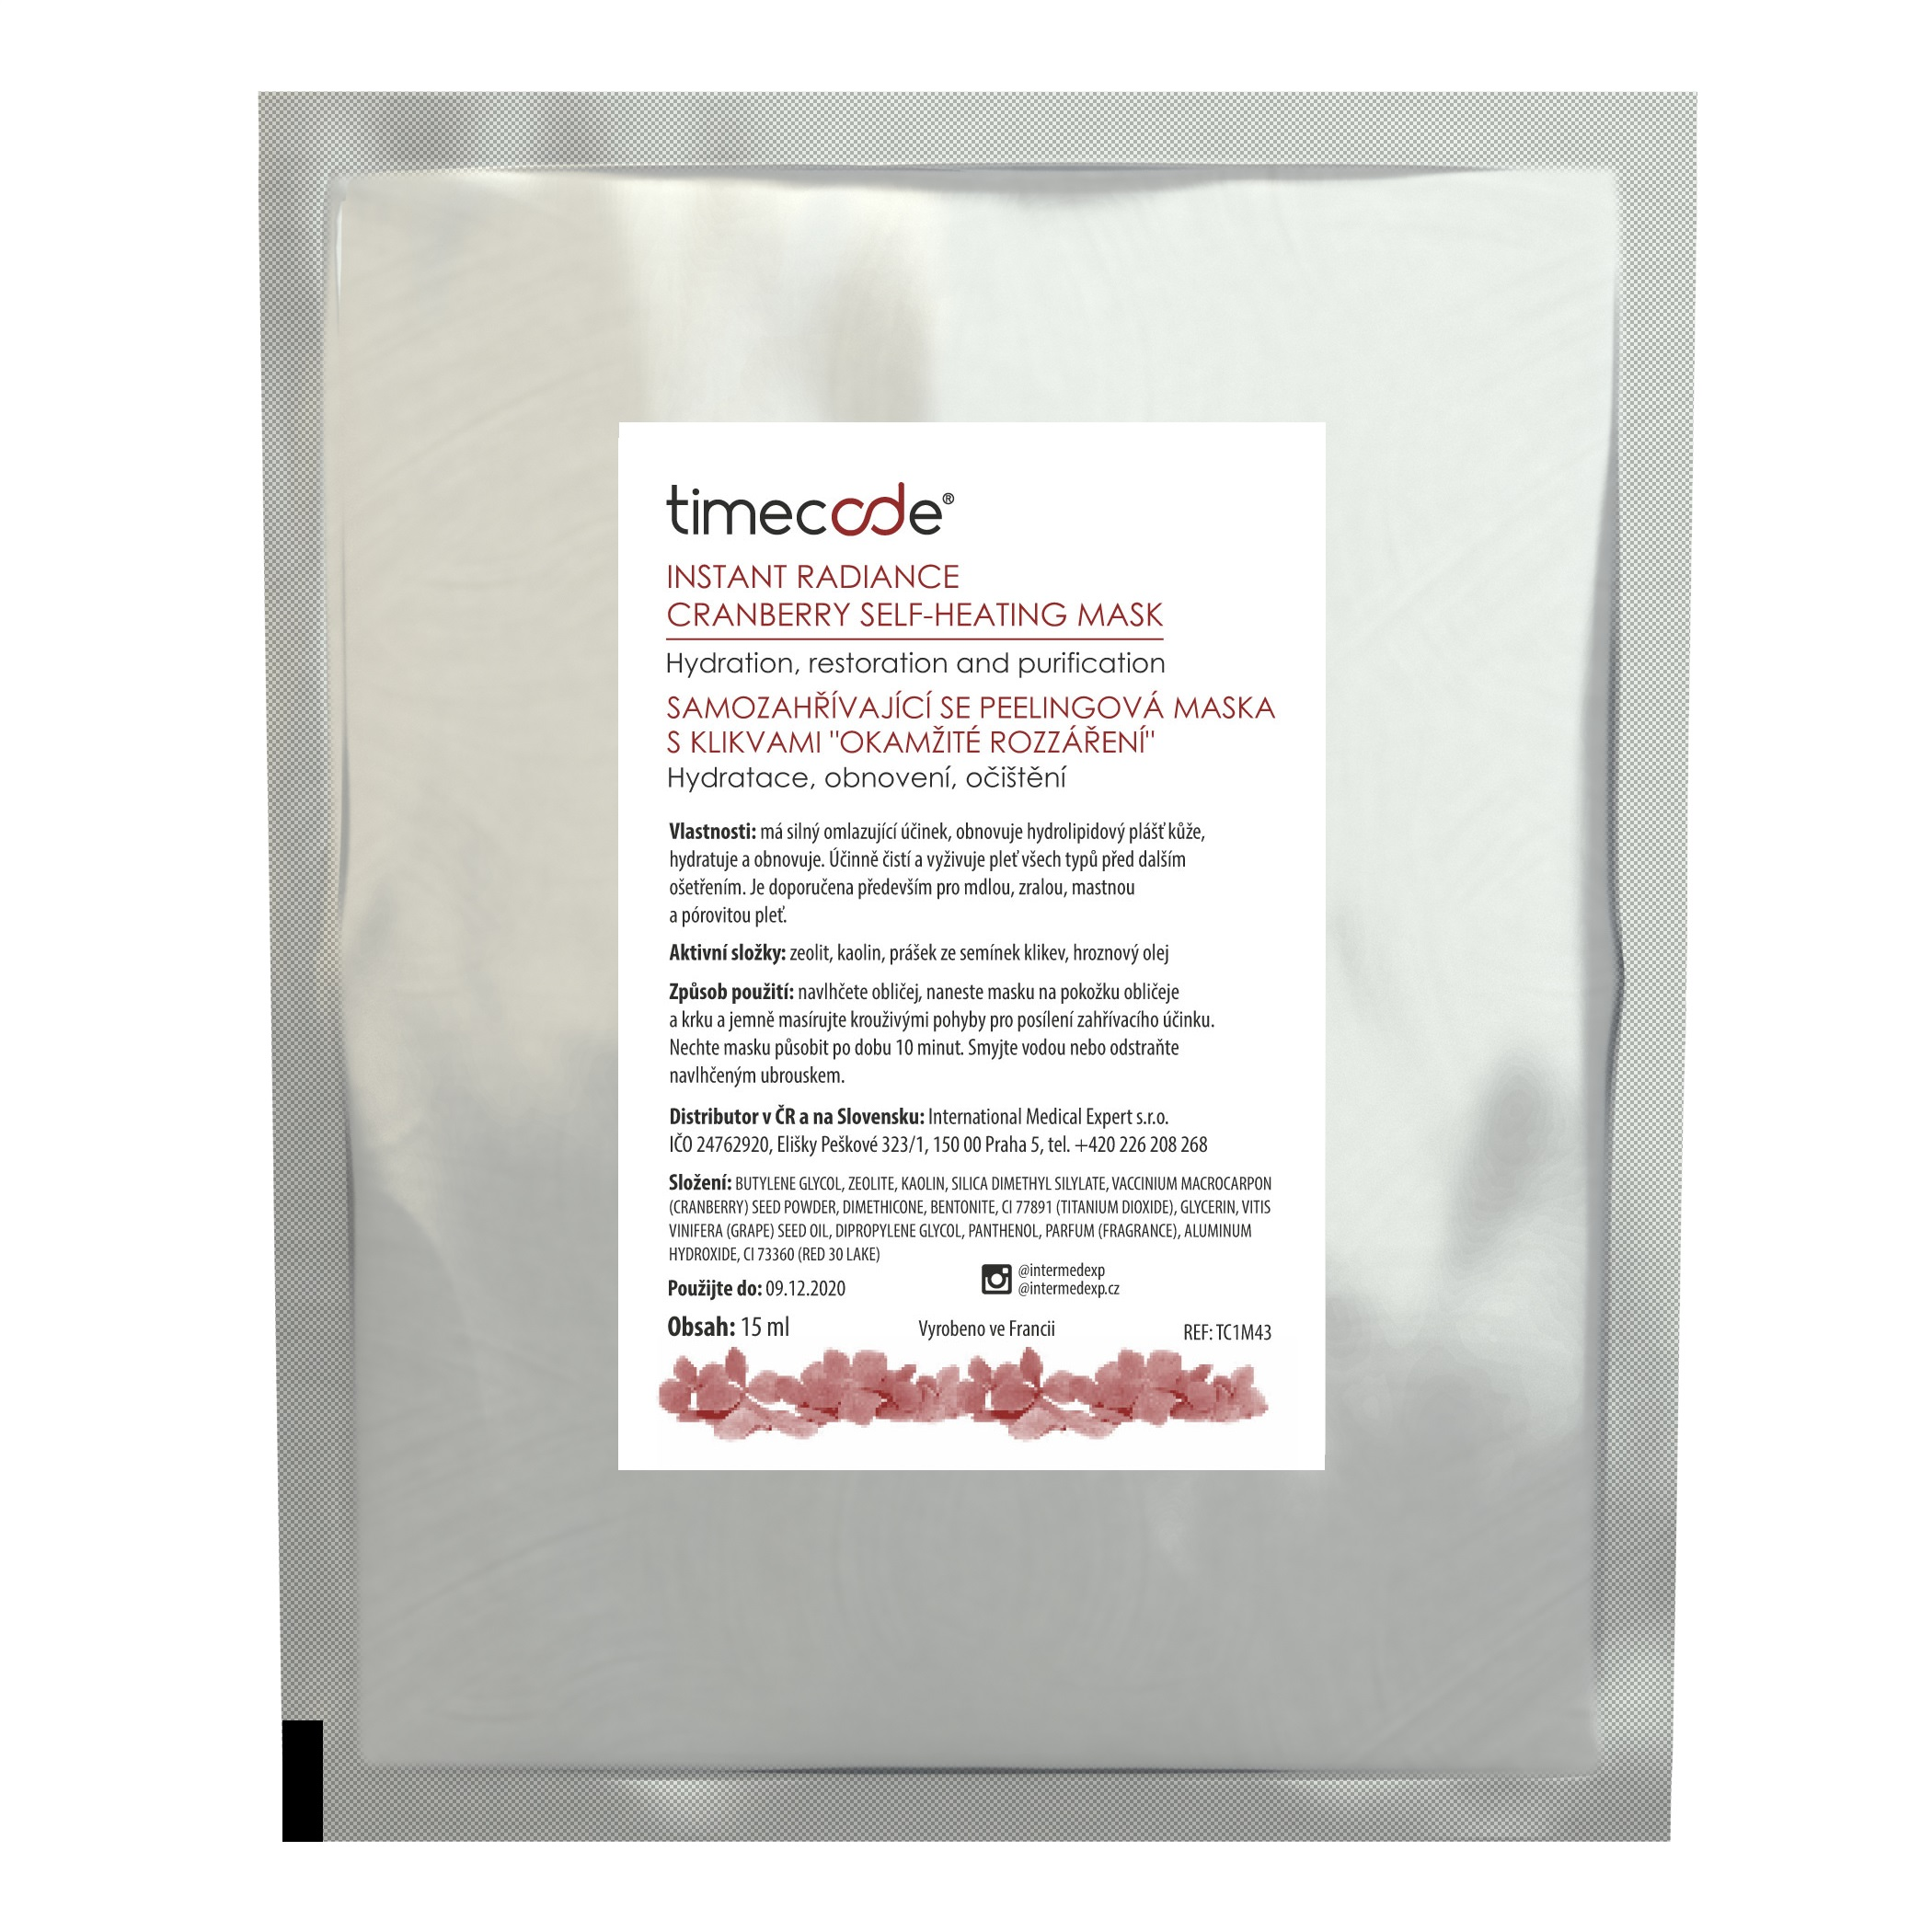 TIMECODE CRANBERRY SELF-HEATING MASK